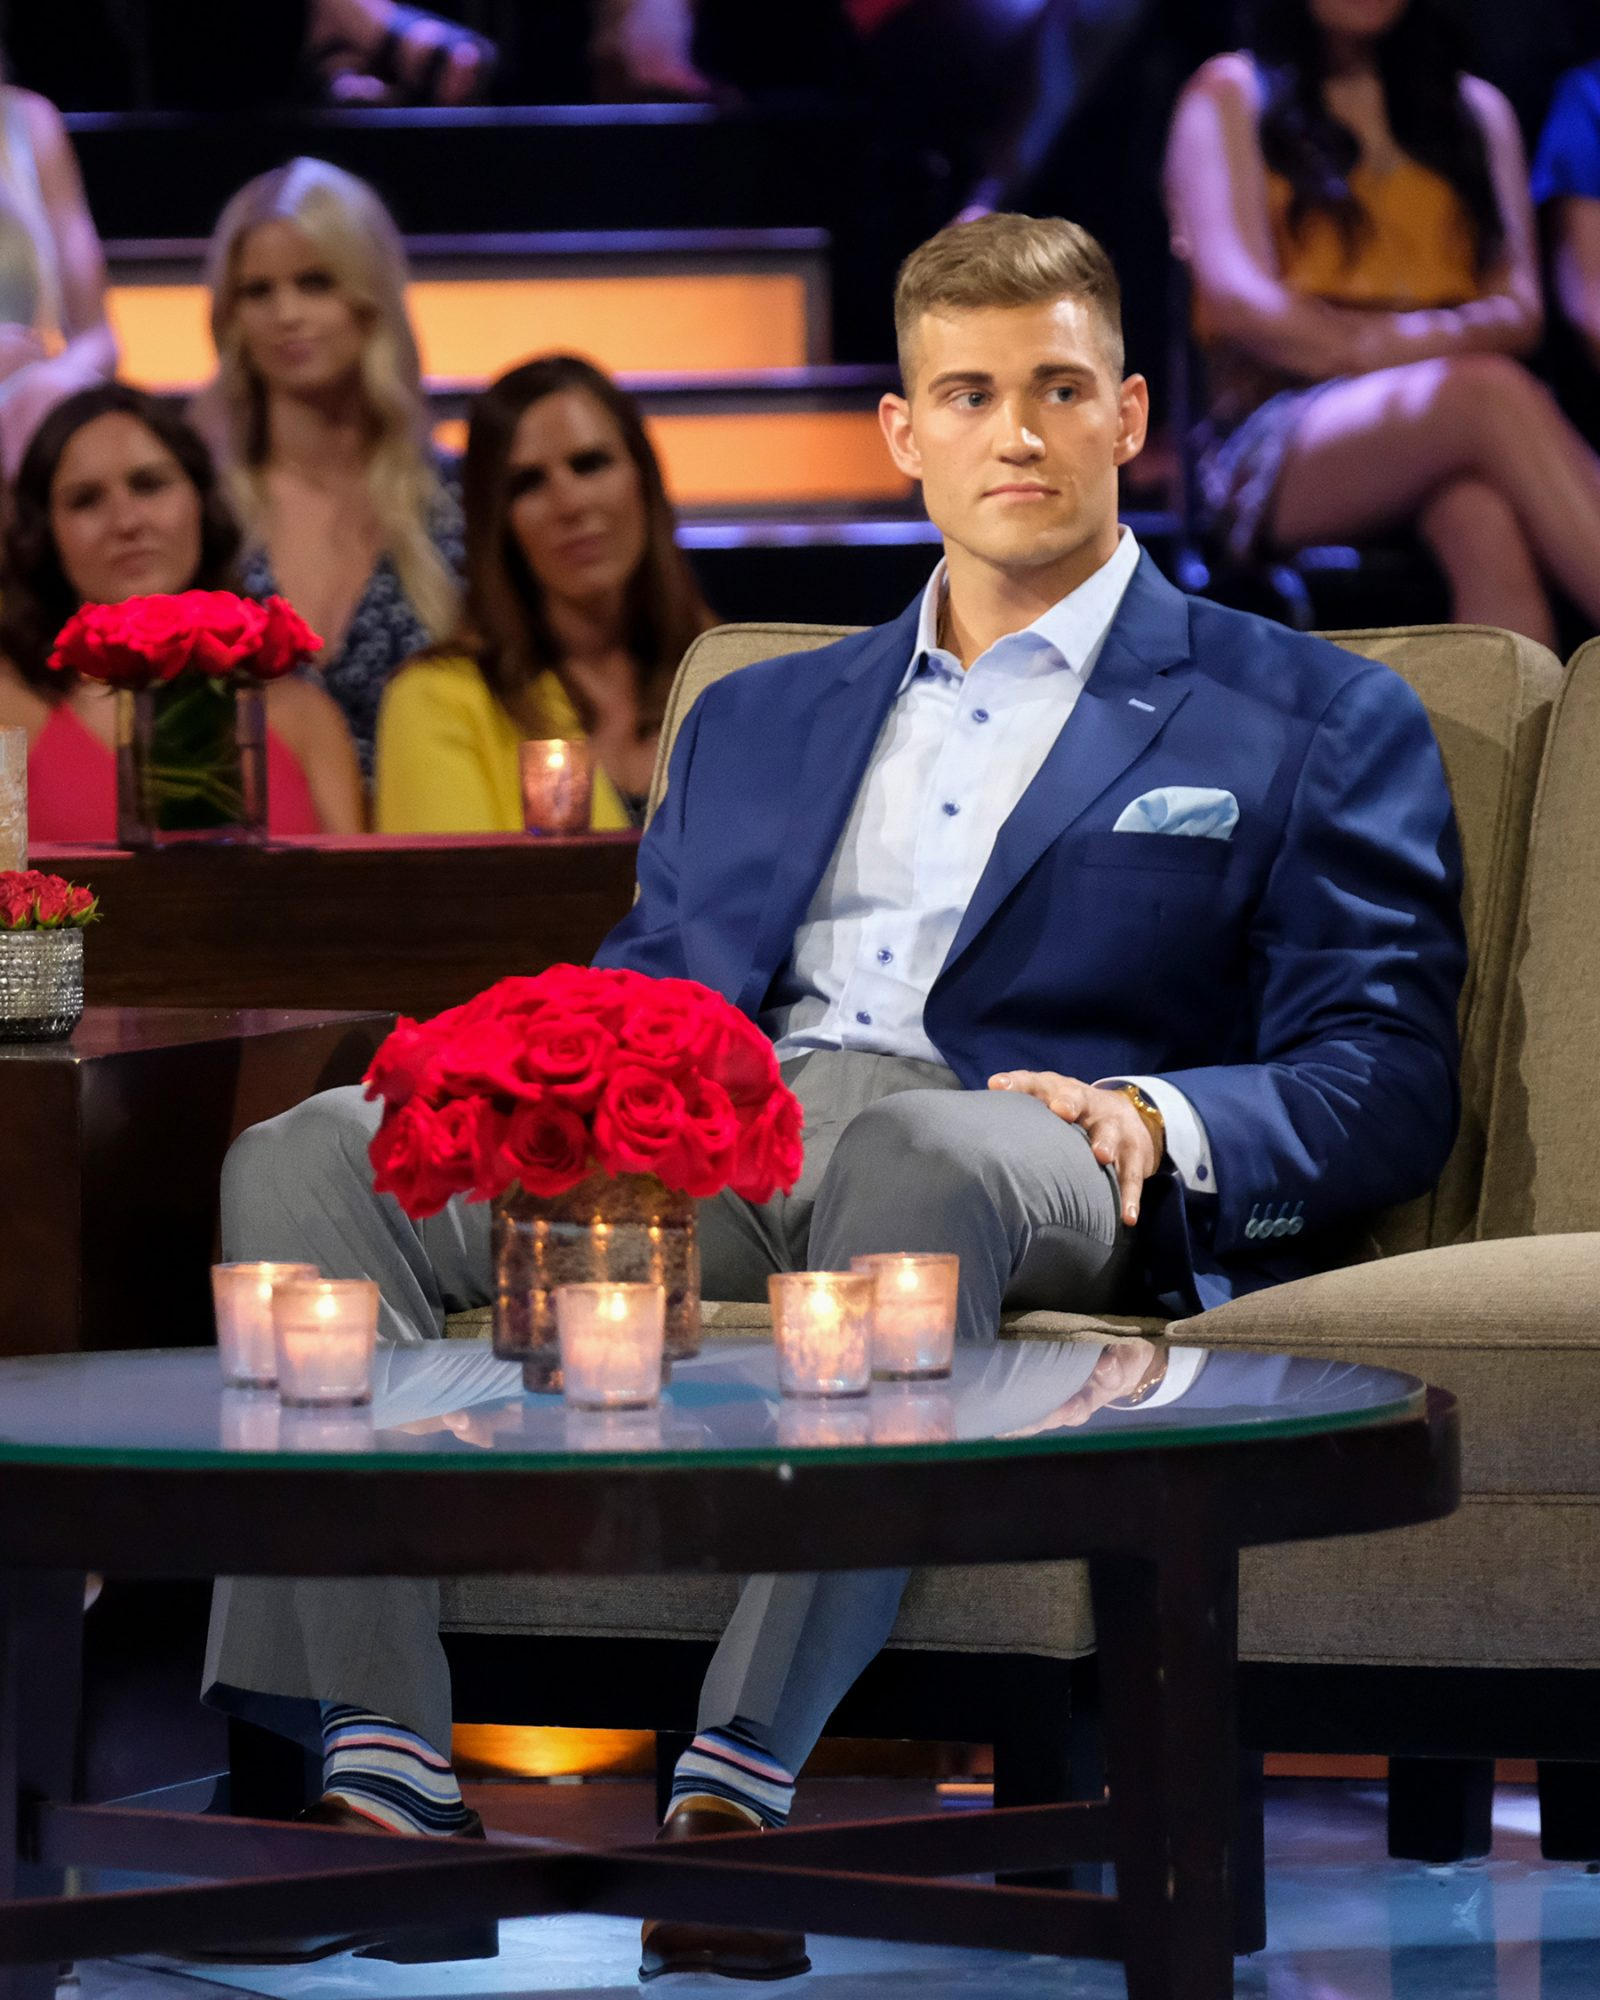 """THE BACHELORETTE: THE MEN TELL - """"The Men Tell All"""" - Luke P.'s stunning final standoff in Greece is revealed; and then, the controversial bachelor will take the hot seat opposite Chris Harrison to give his side of the story. The other men, fired up by Luke P.'s self-defense, explode into the vitriolic outburst they have been holding back all season long. The other most memorable bachelors - including Brian, Cam, Connor S., Daron, Devin, Dustin, Grant, Dylan, Garrett, John Paul Jones, Jonathan, Luke S., Matt, Matteo, Mike and Ryan -- return to confront each other and Hannah one last time to dish the dirt, tell their side of the story and share their emotional departures. Finally, as the clock ticks down on Hannah's journey to find love, a special sneak peek of her dramatic final week with Jed, Peter and Tyler C. is featured on """"The Bachelorette: The Men Tell All,"""" MONDAY, JULY 22 (8:00-10:01 p.m. EDT), on ABC. (ABC/John Fleenor) LUKE P."""